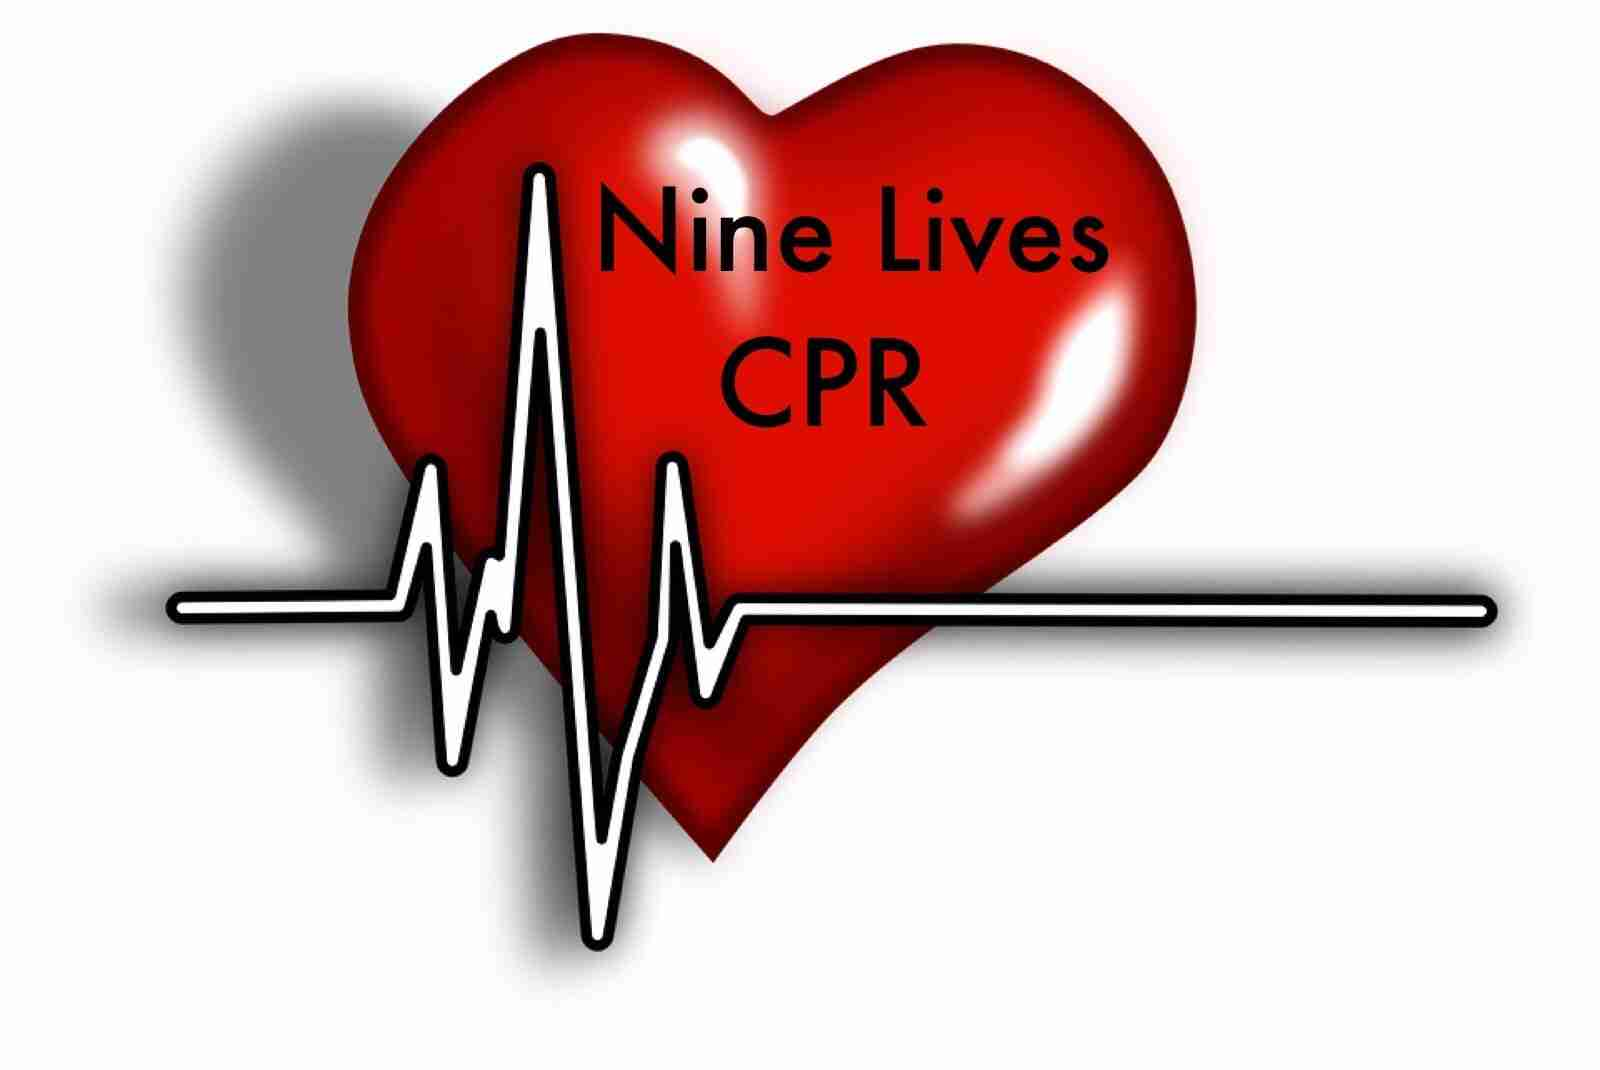 Nine Lives CPR